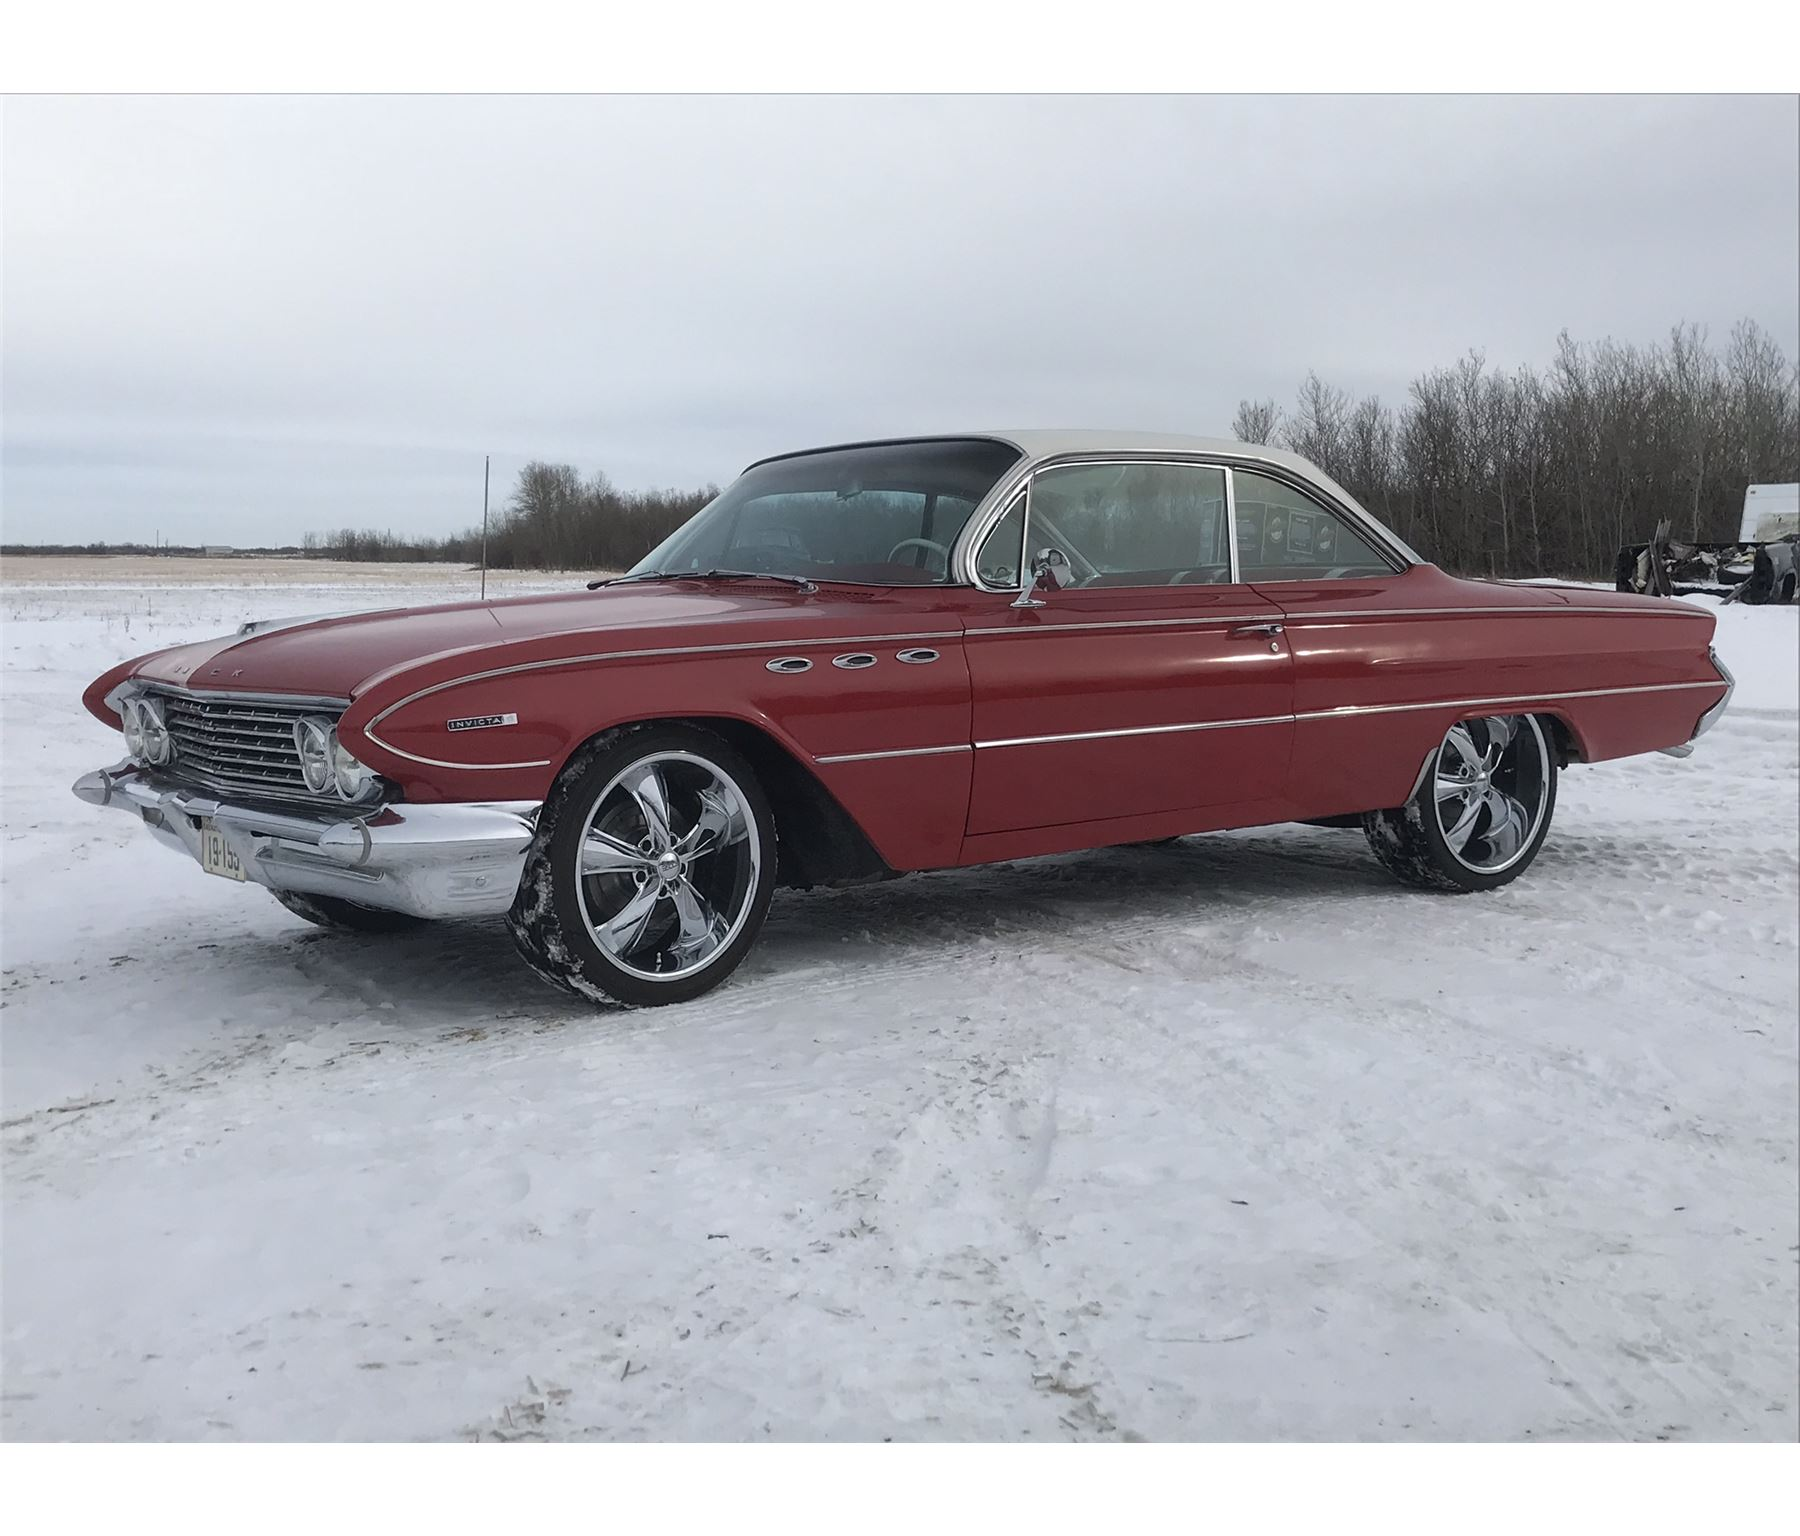 hight resolution of image 1 1961 buick invicta 2 door bubble top